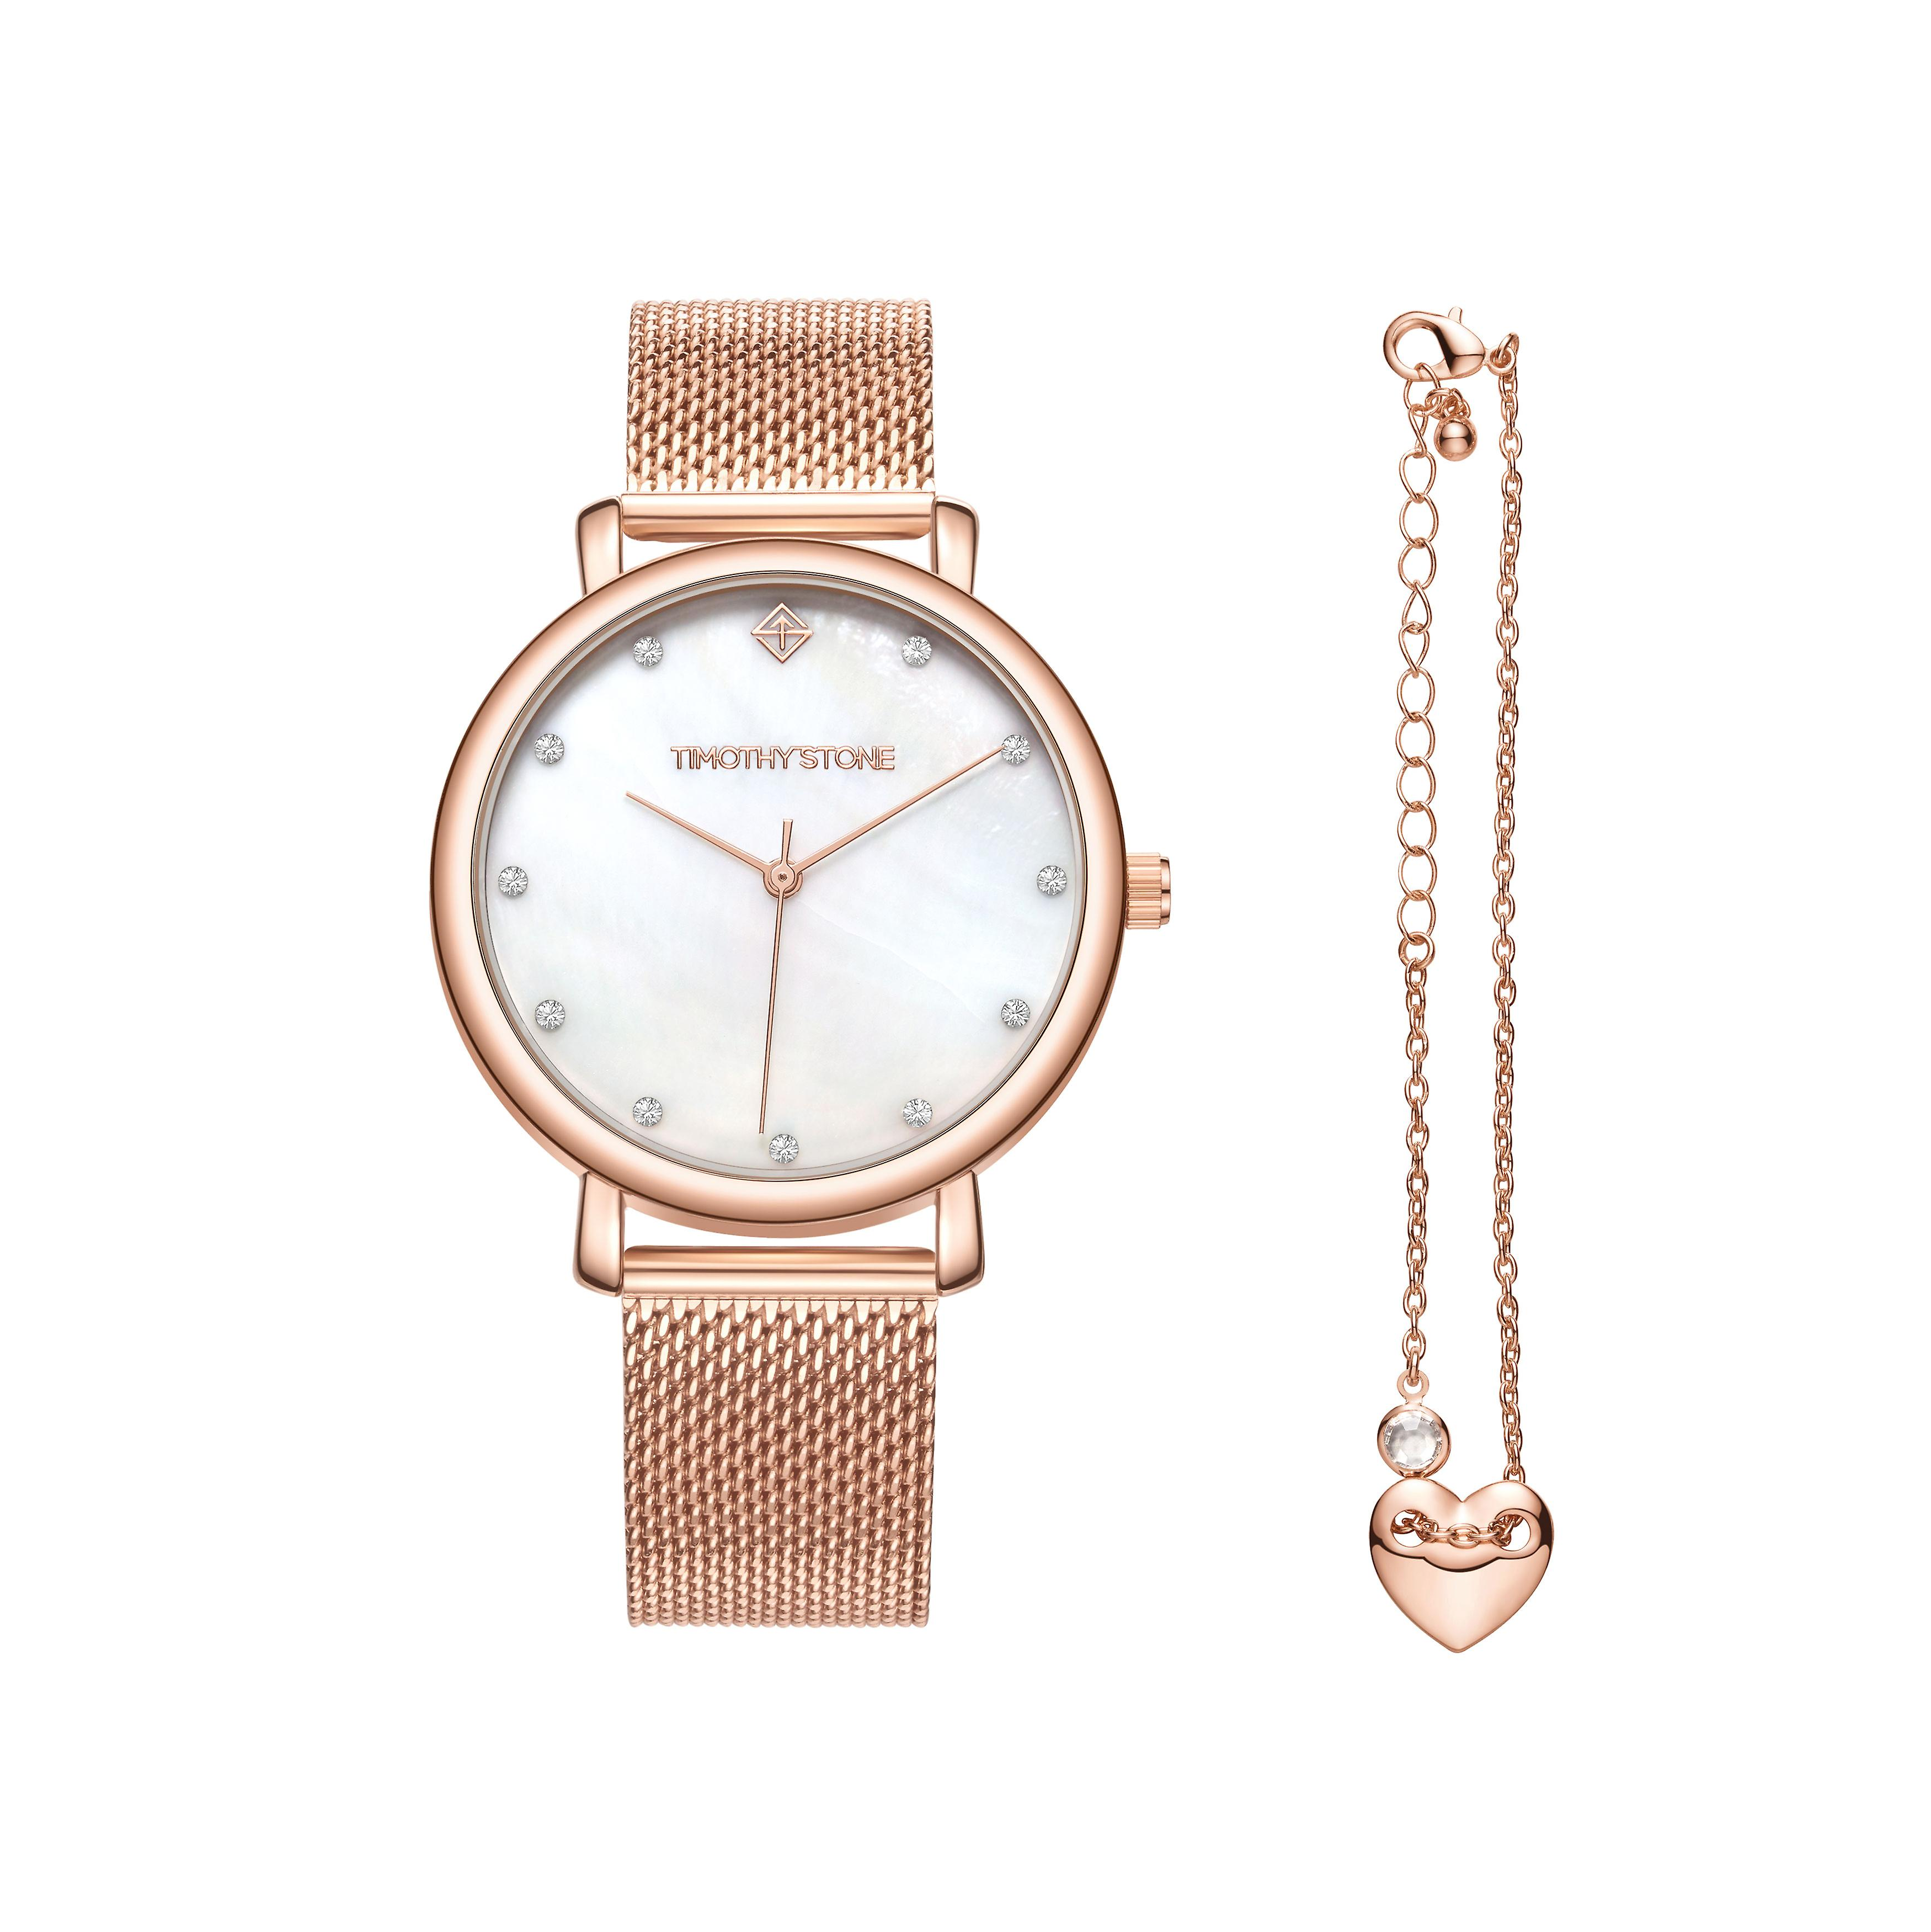 Timothy Stone women watch collection Trinity Rose Gold